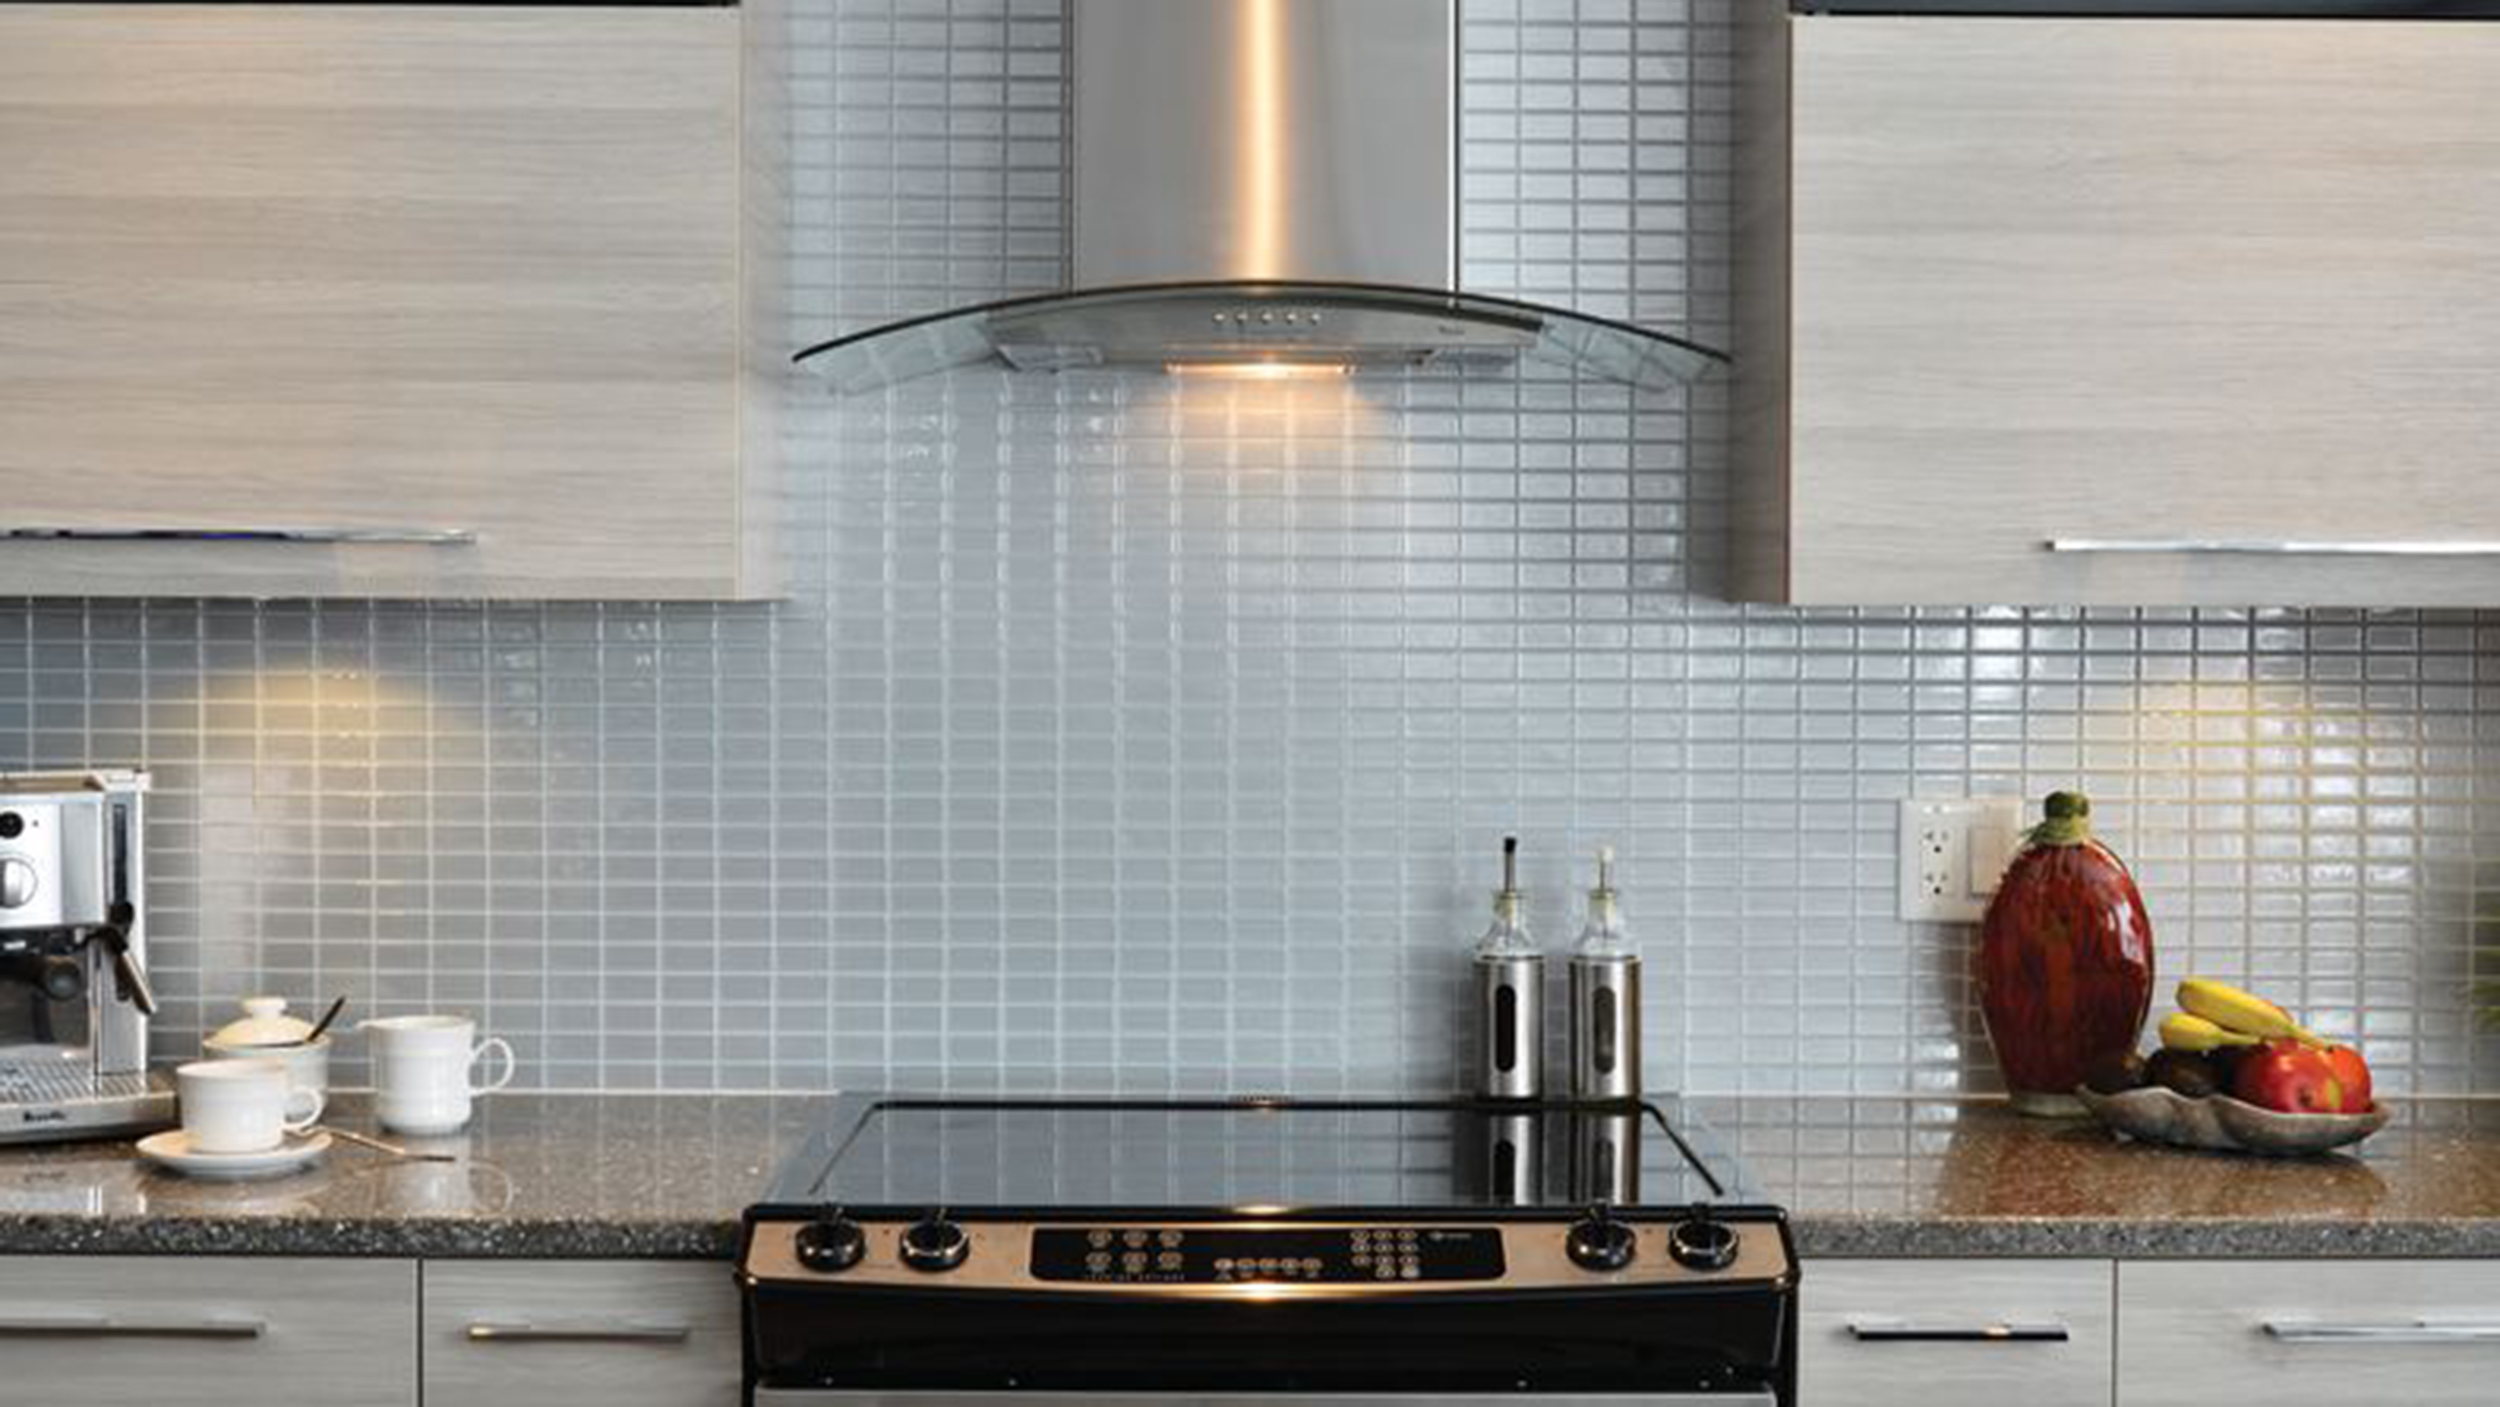 Kitchen tile makeover Use Smart Tiles to update your backsplash